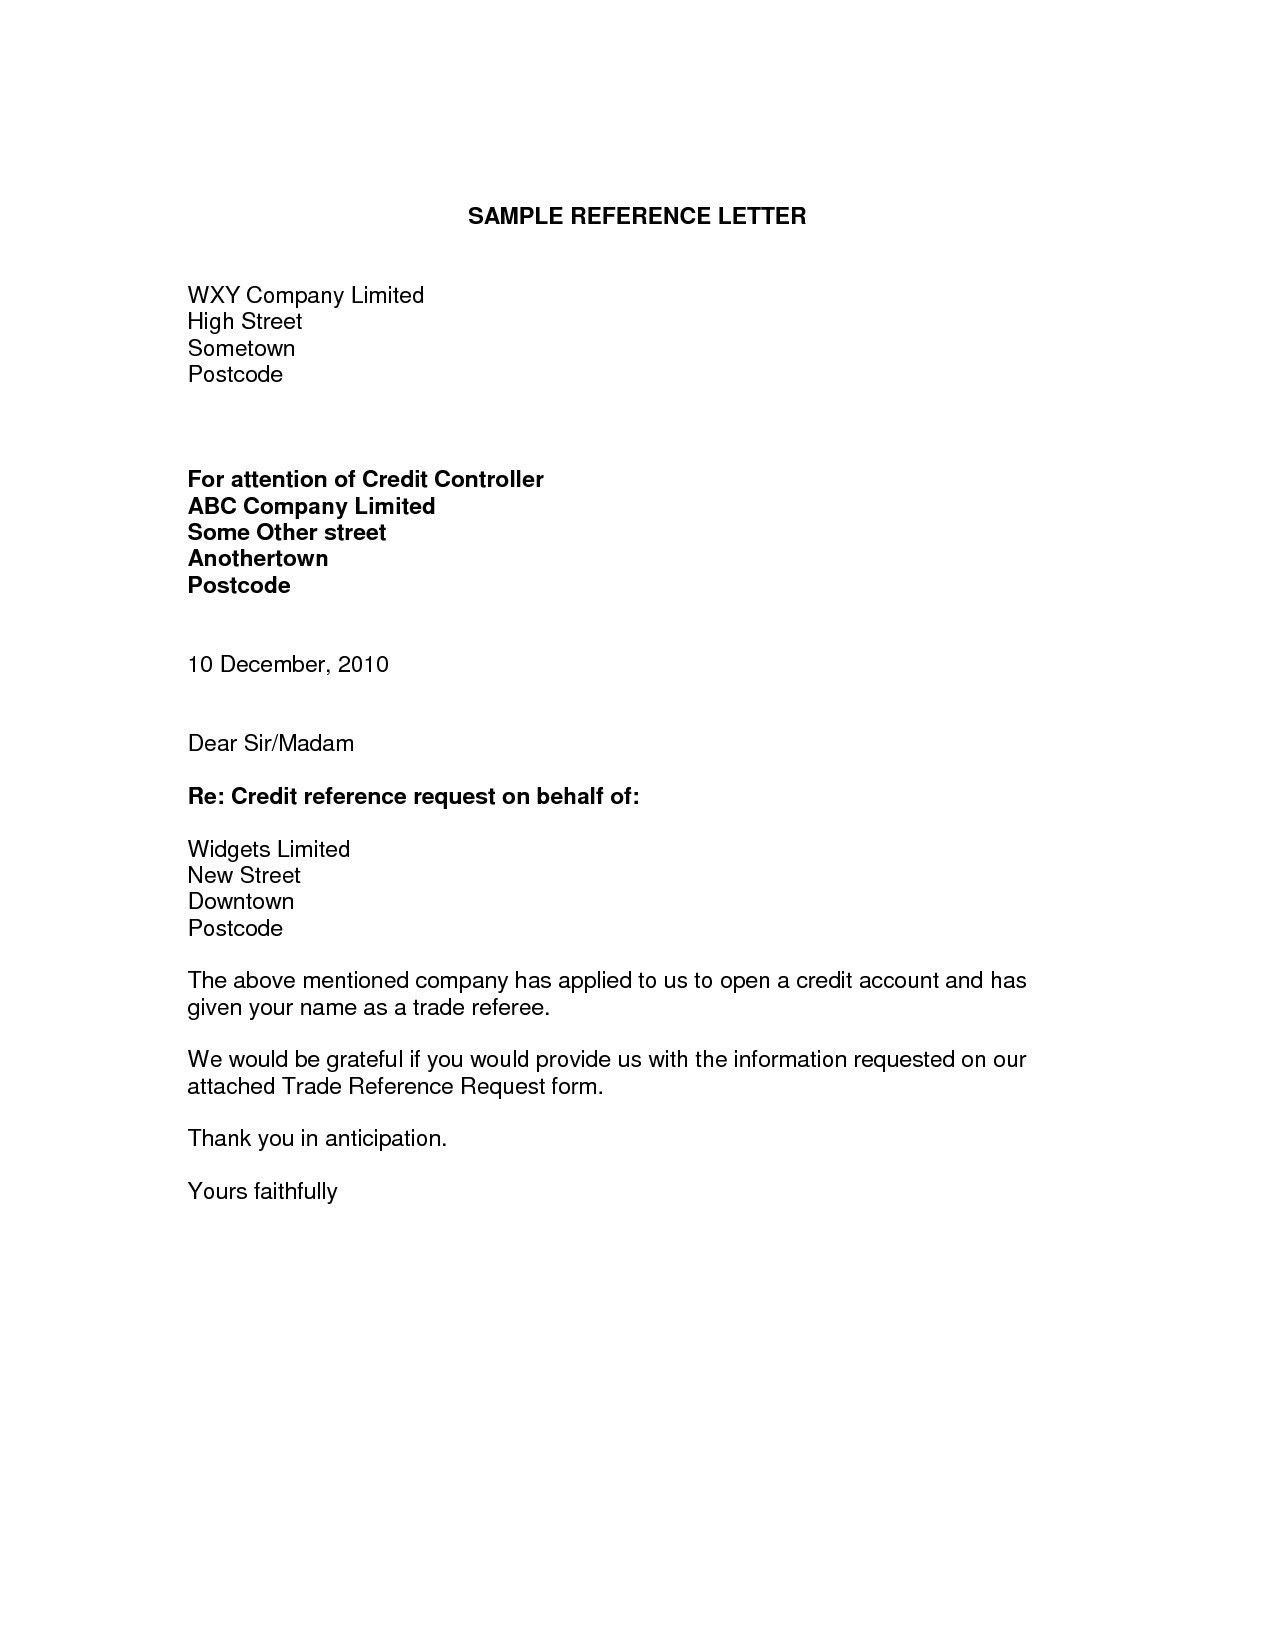 You Can See This New Business Letter format for